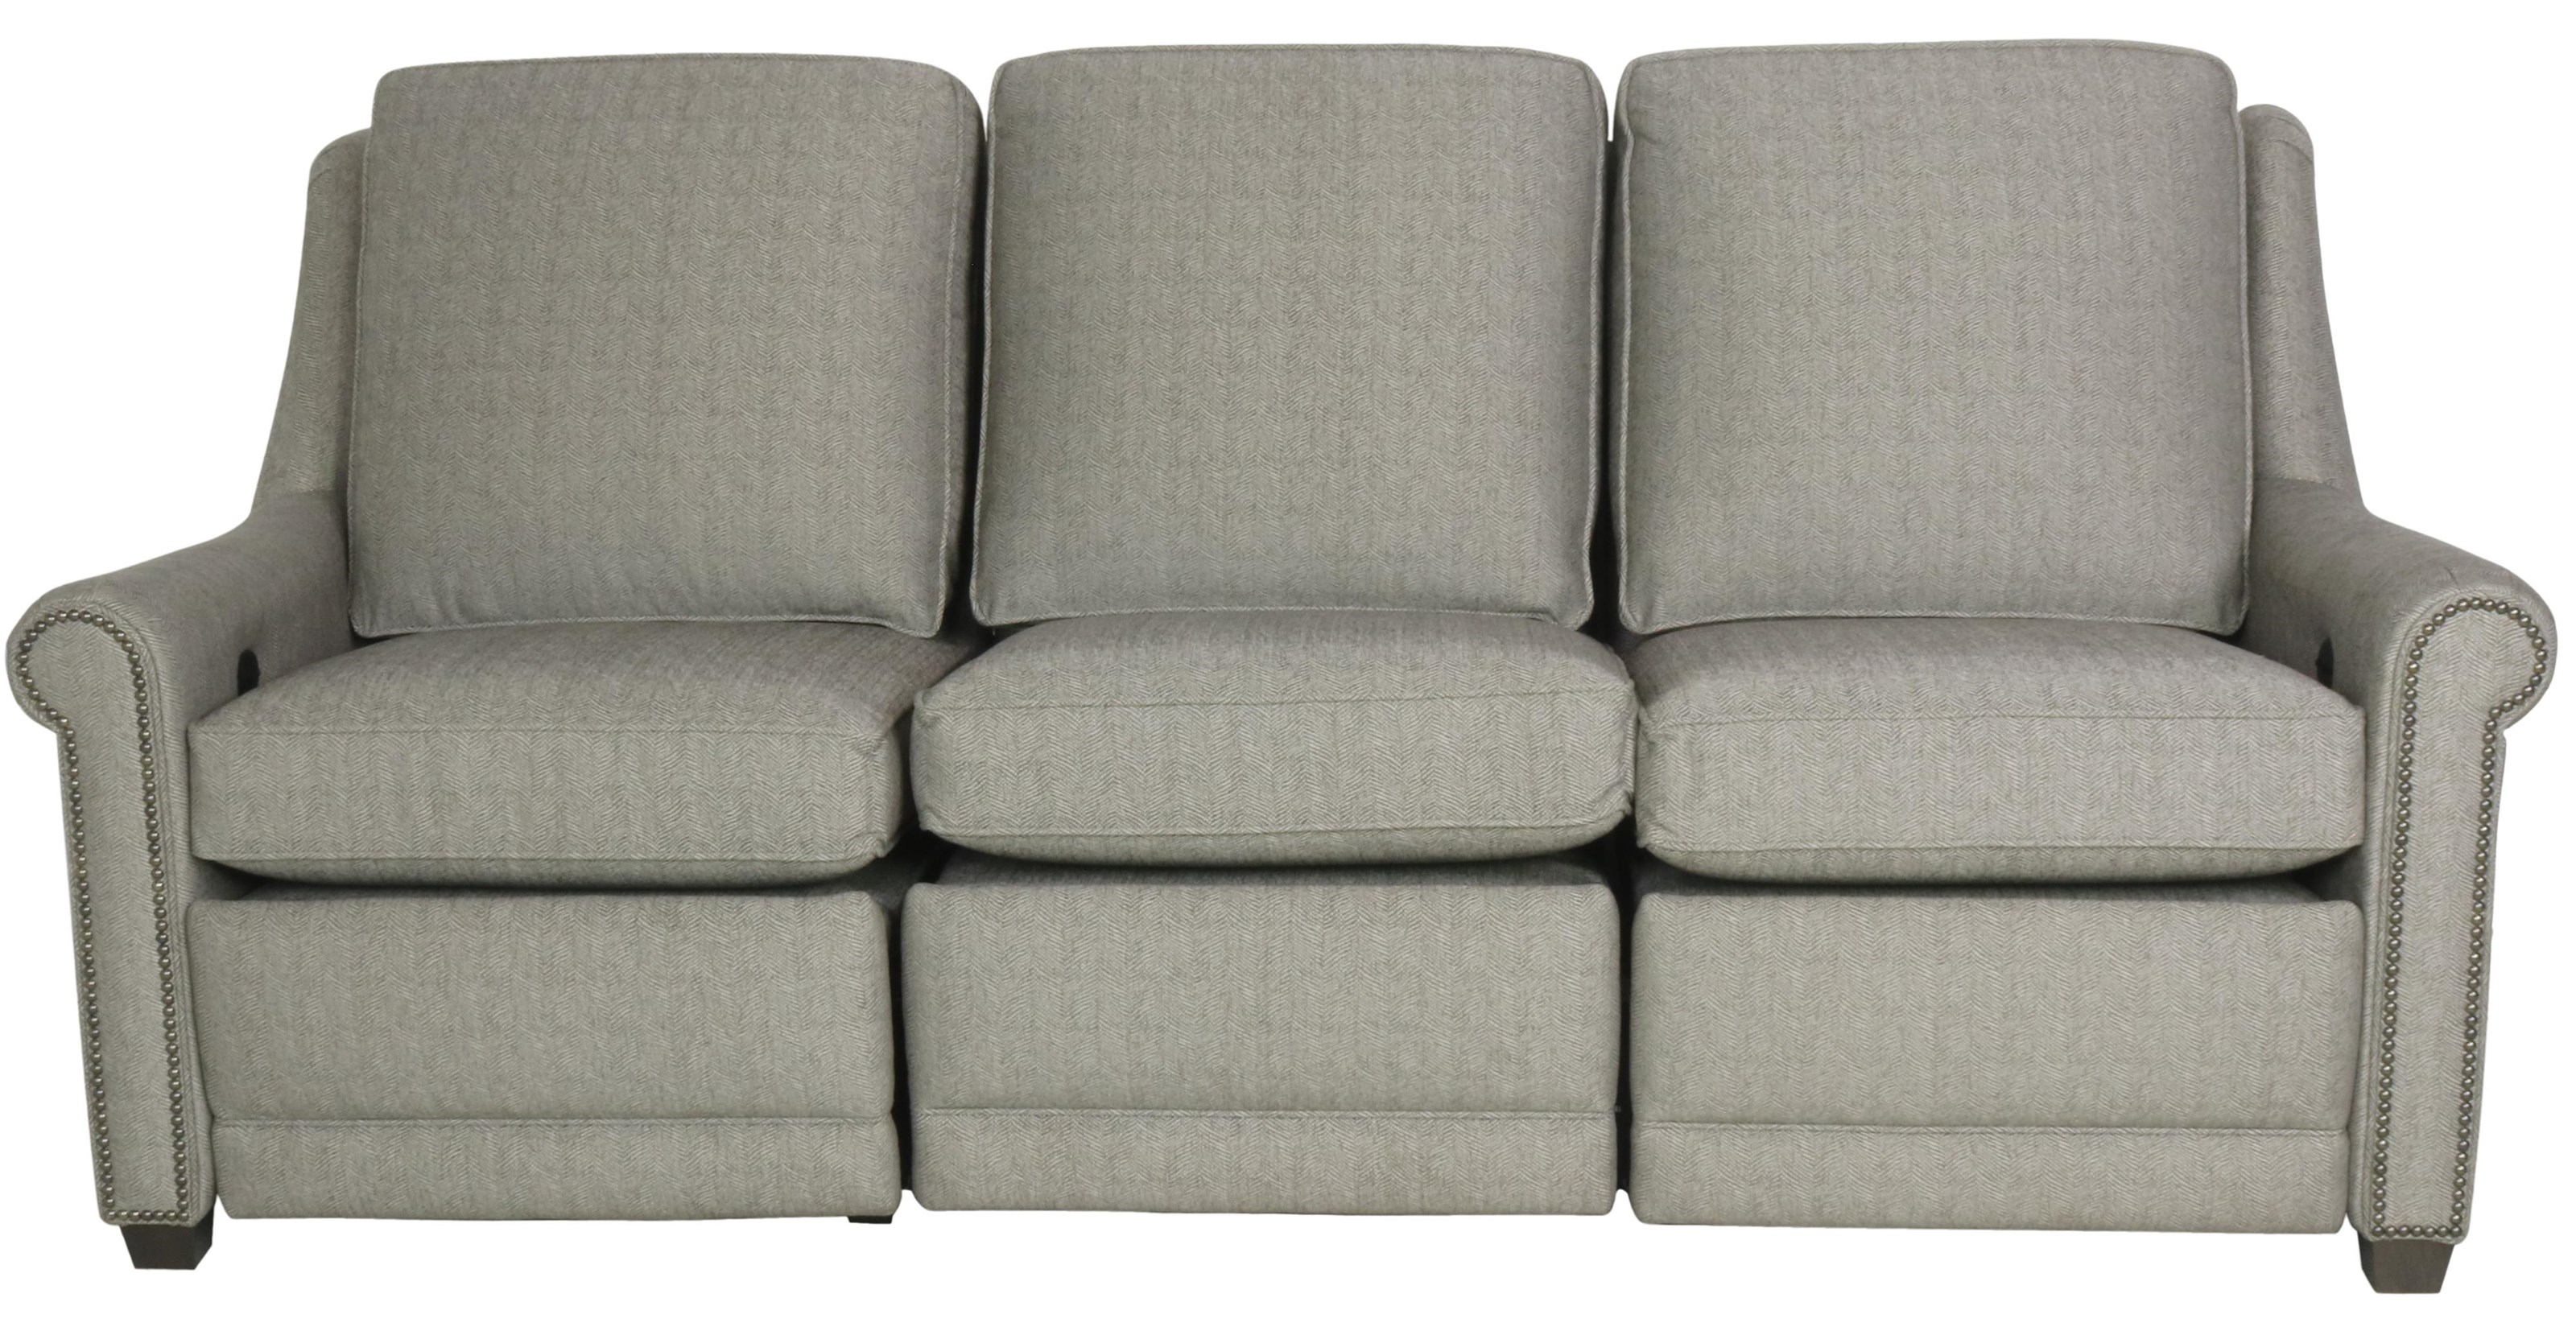 450 Reclining Sofa by Smith Brothers at Sprintz Furniture